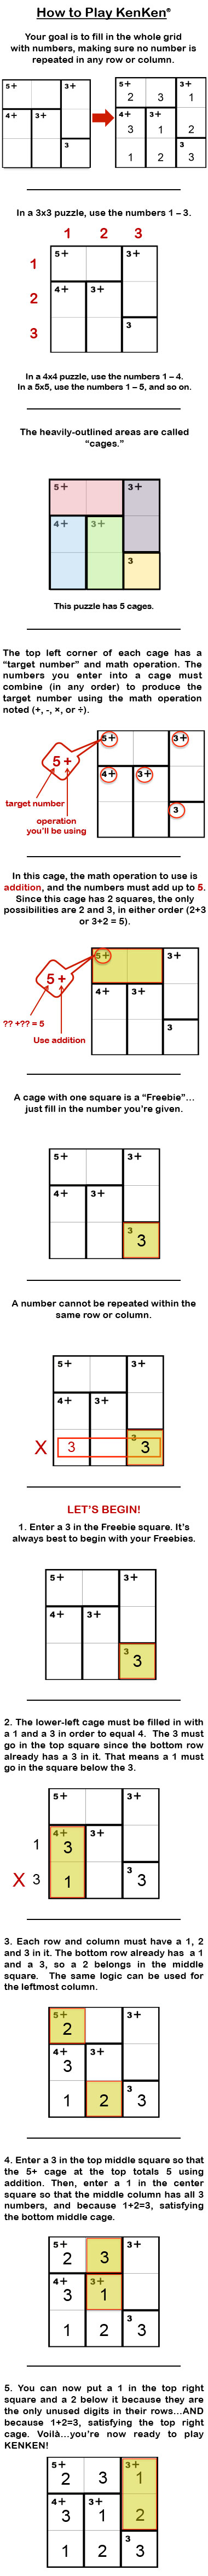 Kenken Puzzle Rules - How To Play This Amazing Puzzle & Brain Teaser! - Kenken Puzzles Printable 5X5